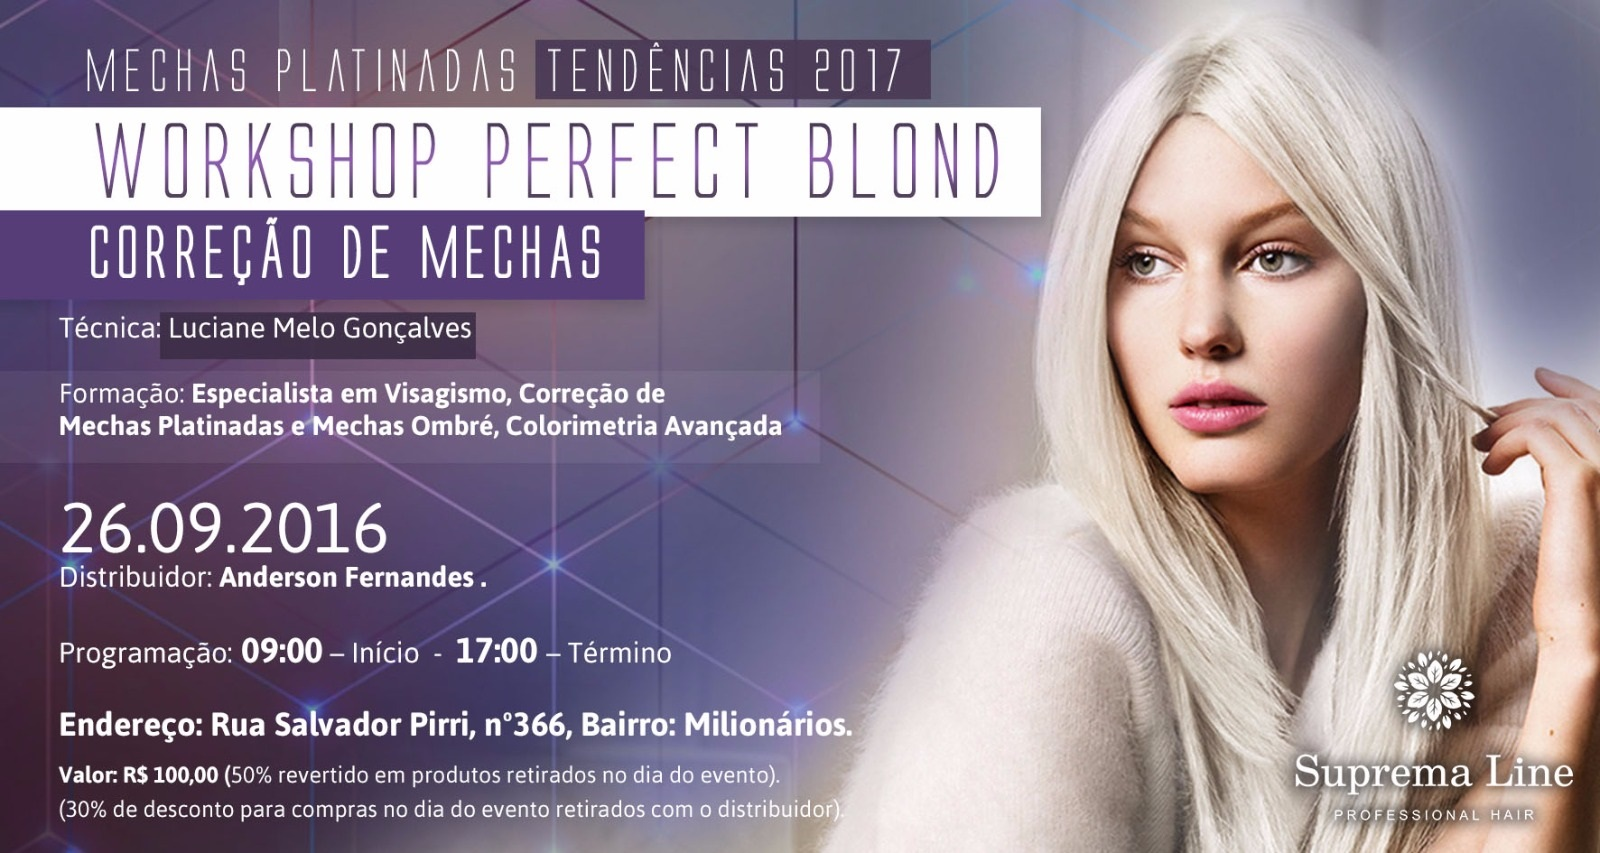 Workshop Perfect Blond: 26/09/2016 - Anderson Fernandes.jpg